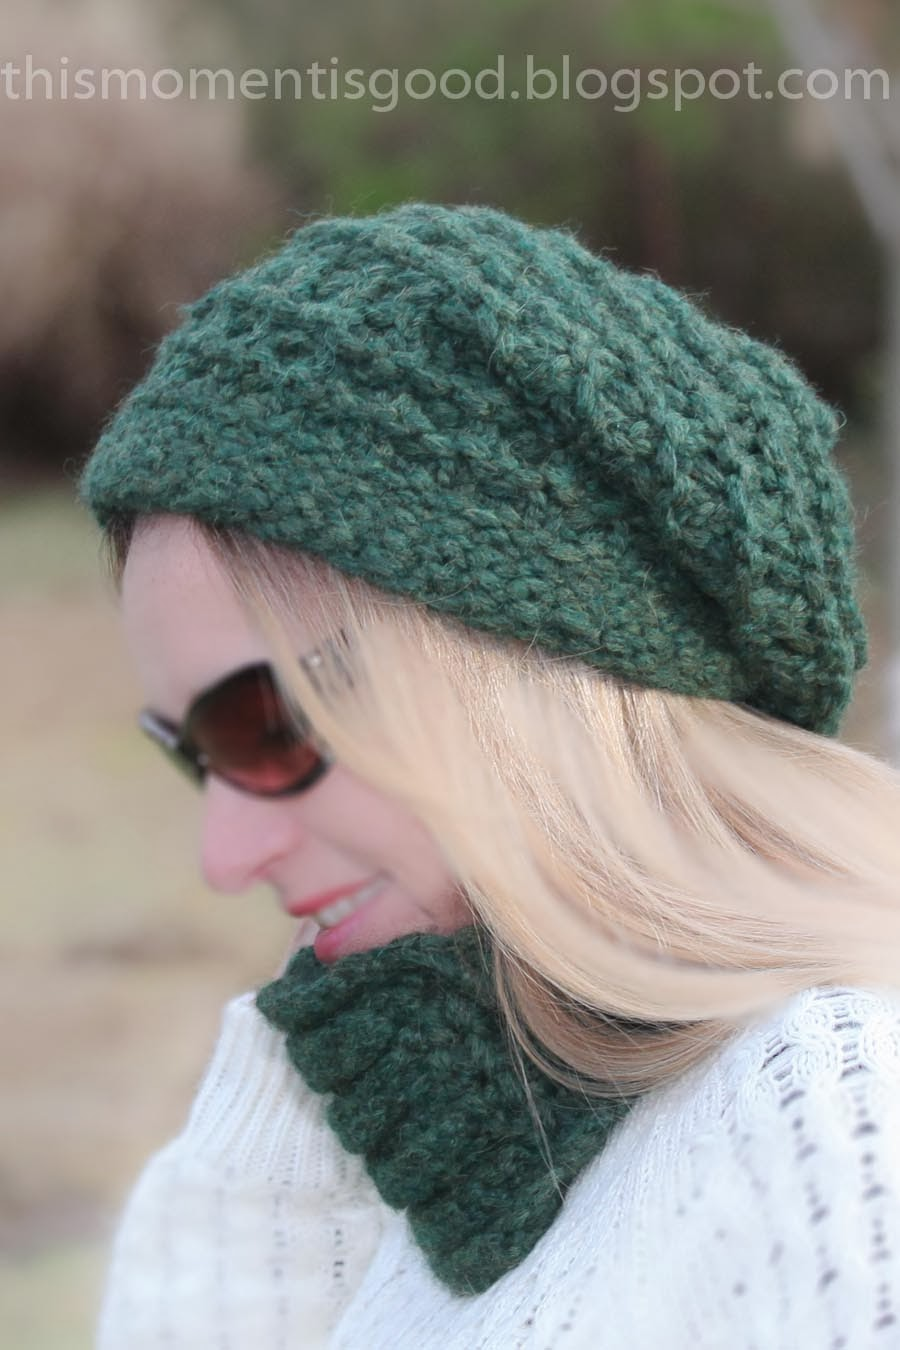 Knitting Loom Hat Stitches : Loom Knitting by This Moment is Good!: LOOM KNIT LACE & RIDGE SLOUCH HAT ...